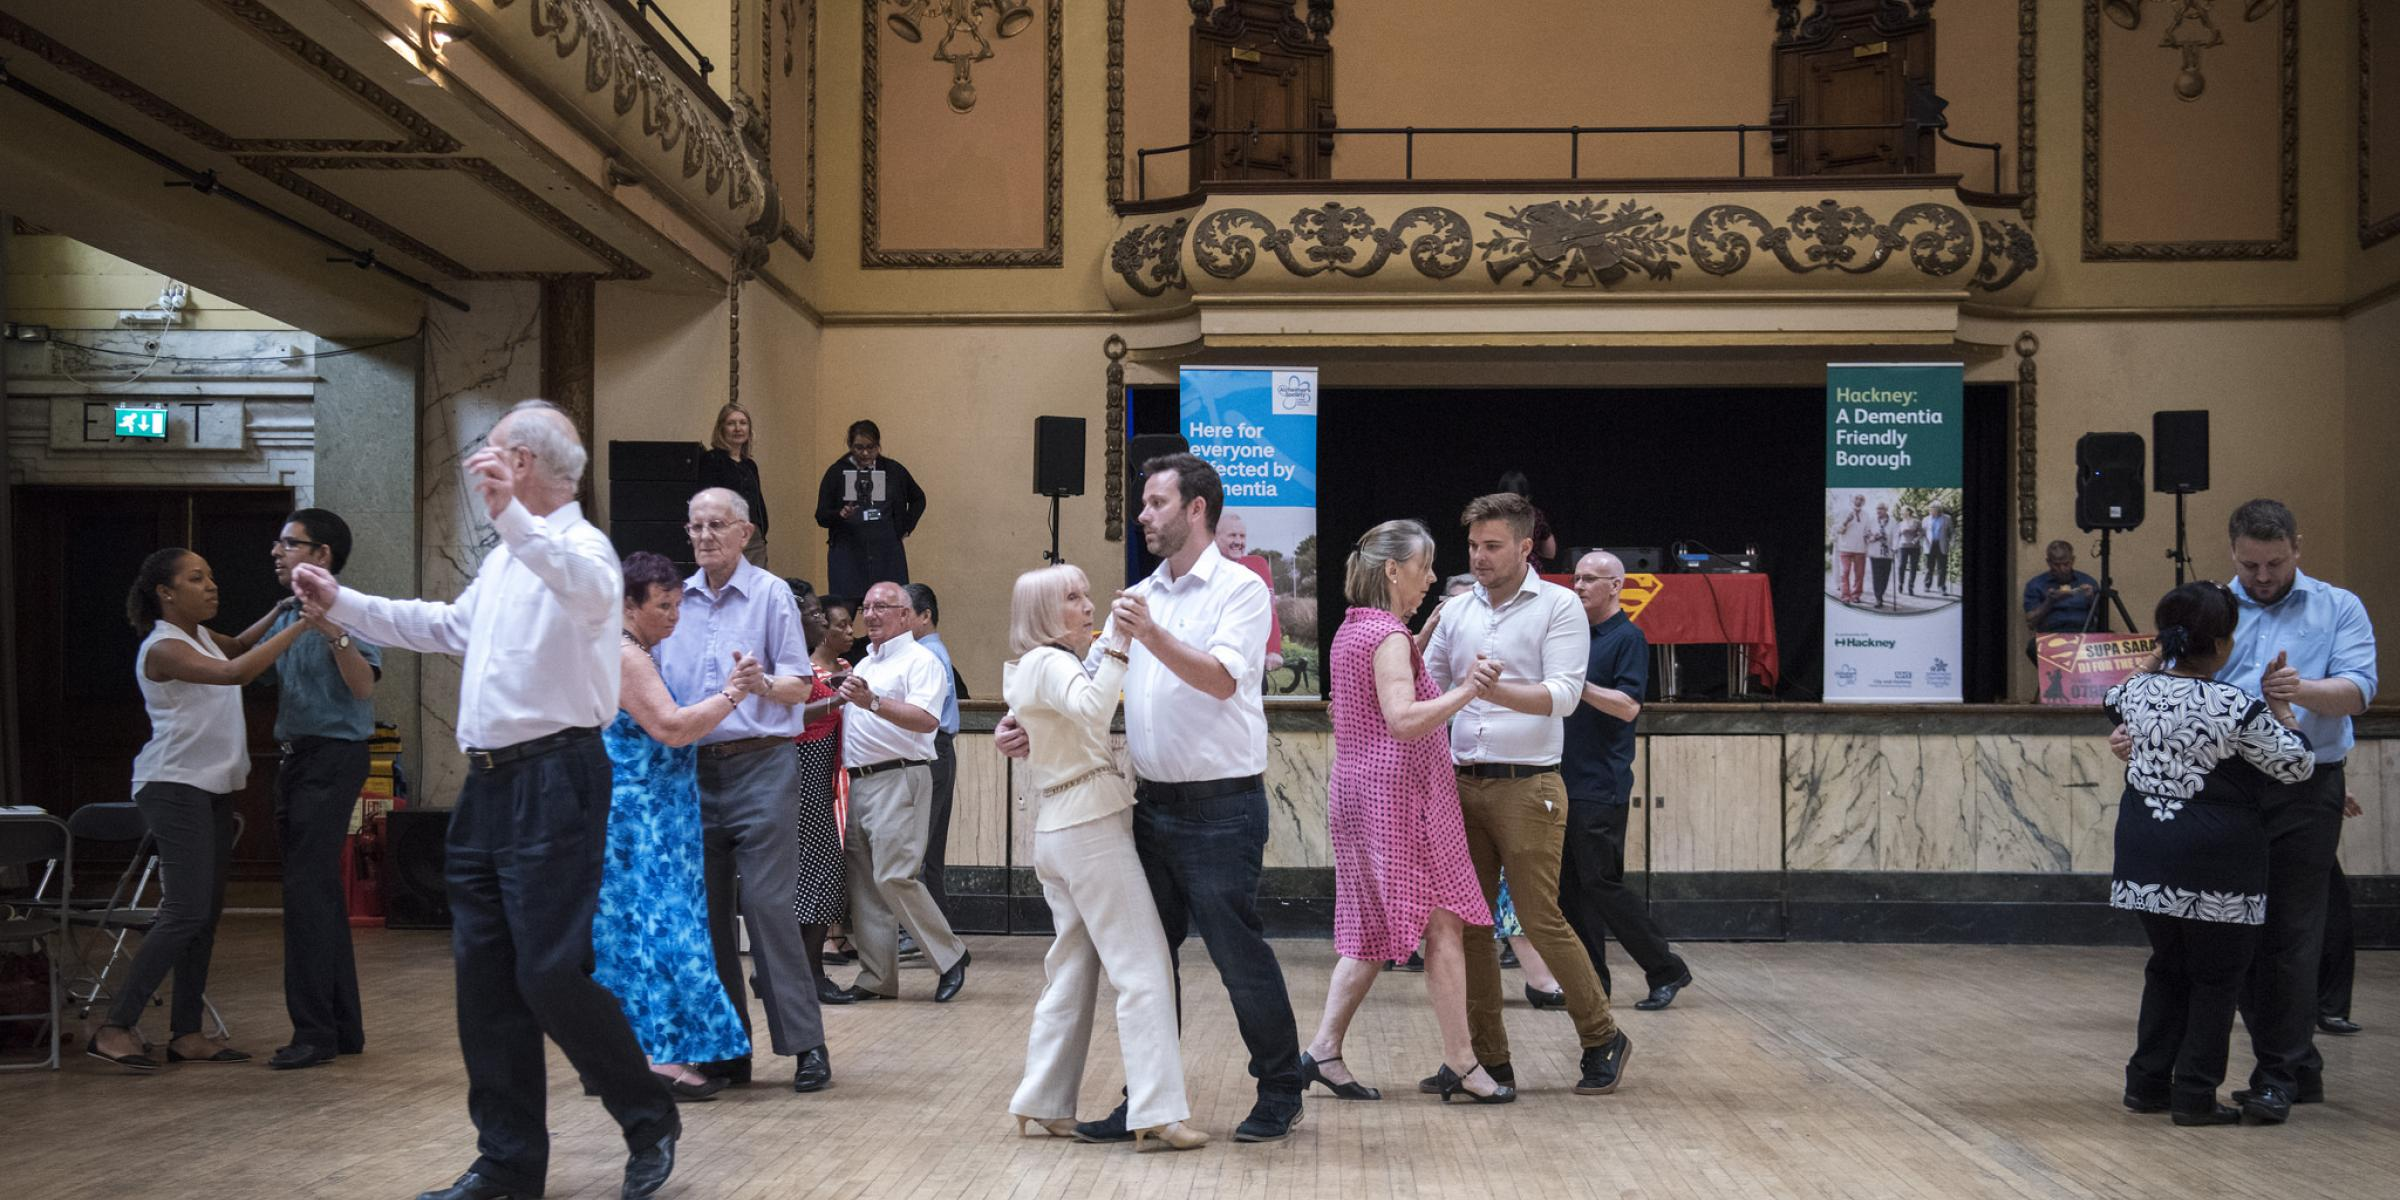 Hackney Dementia Festival tea dance at Shoreditch Town Hall